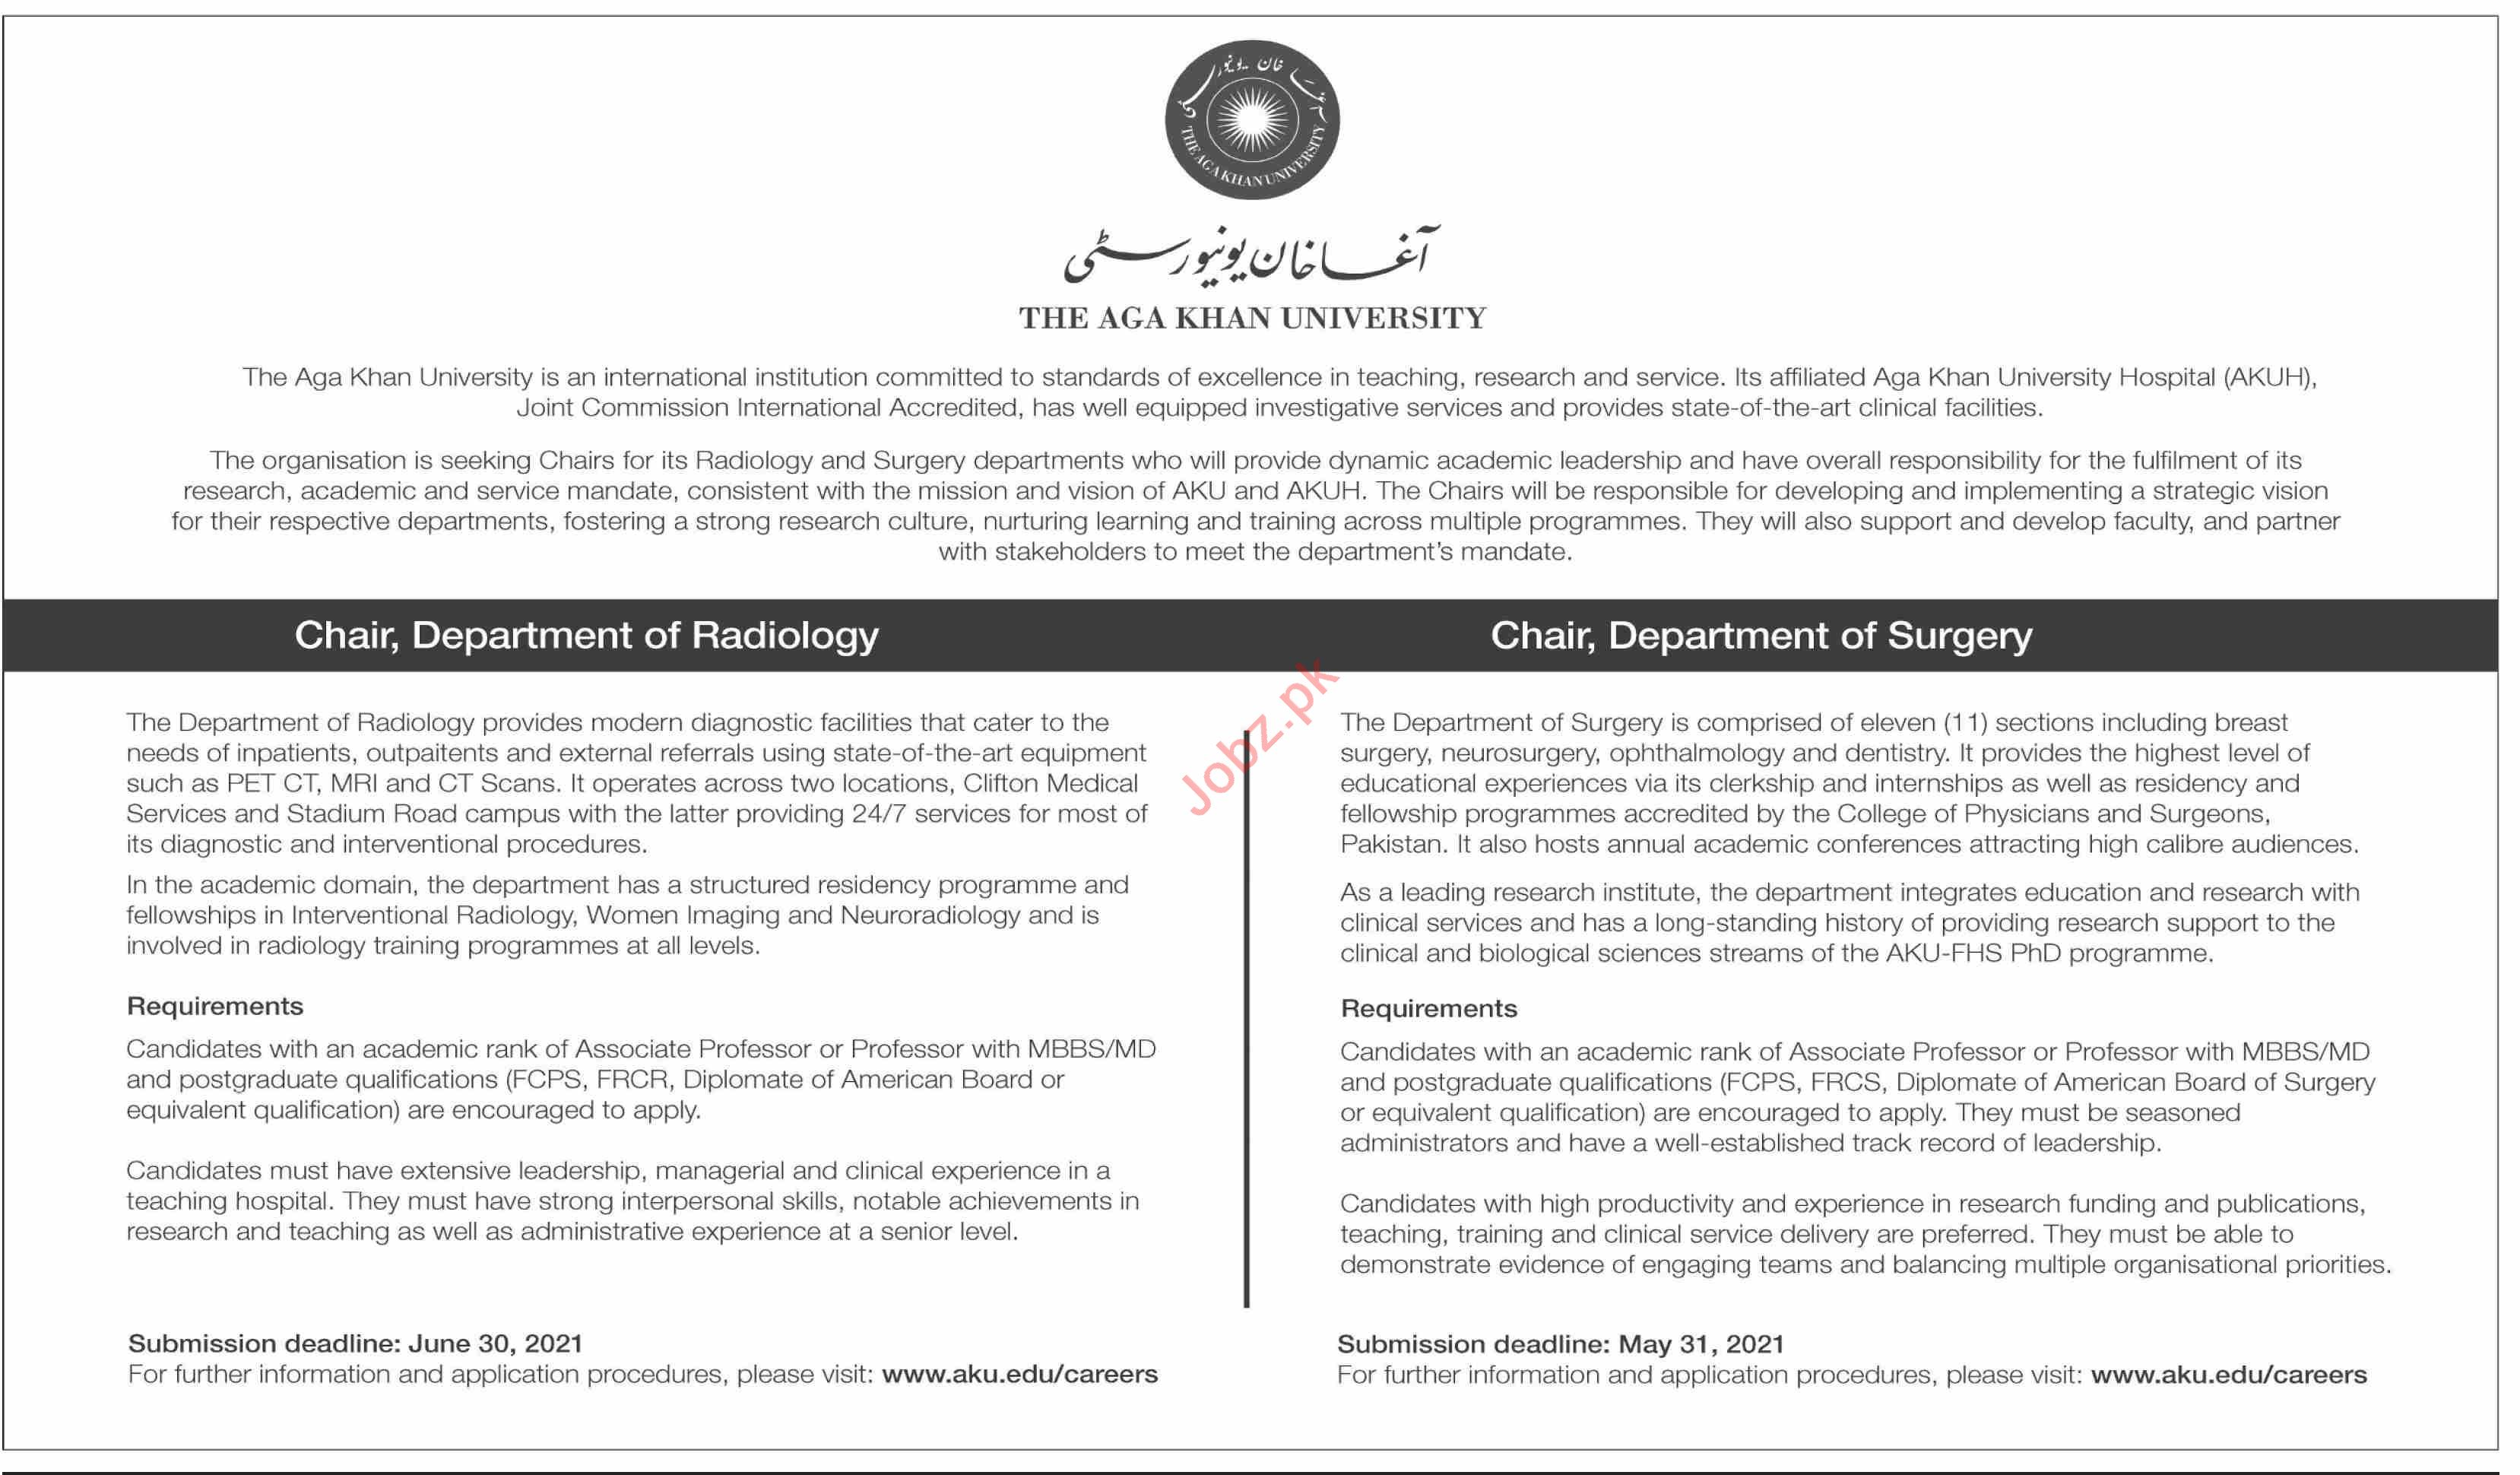 The Aga Khan University AKU Karachi Jobs 2021 for Chair